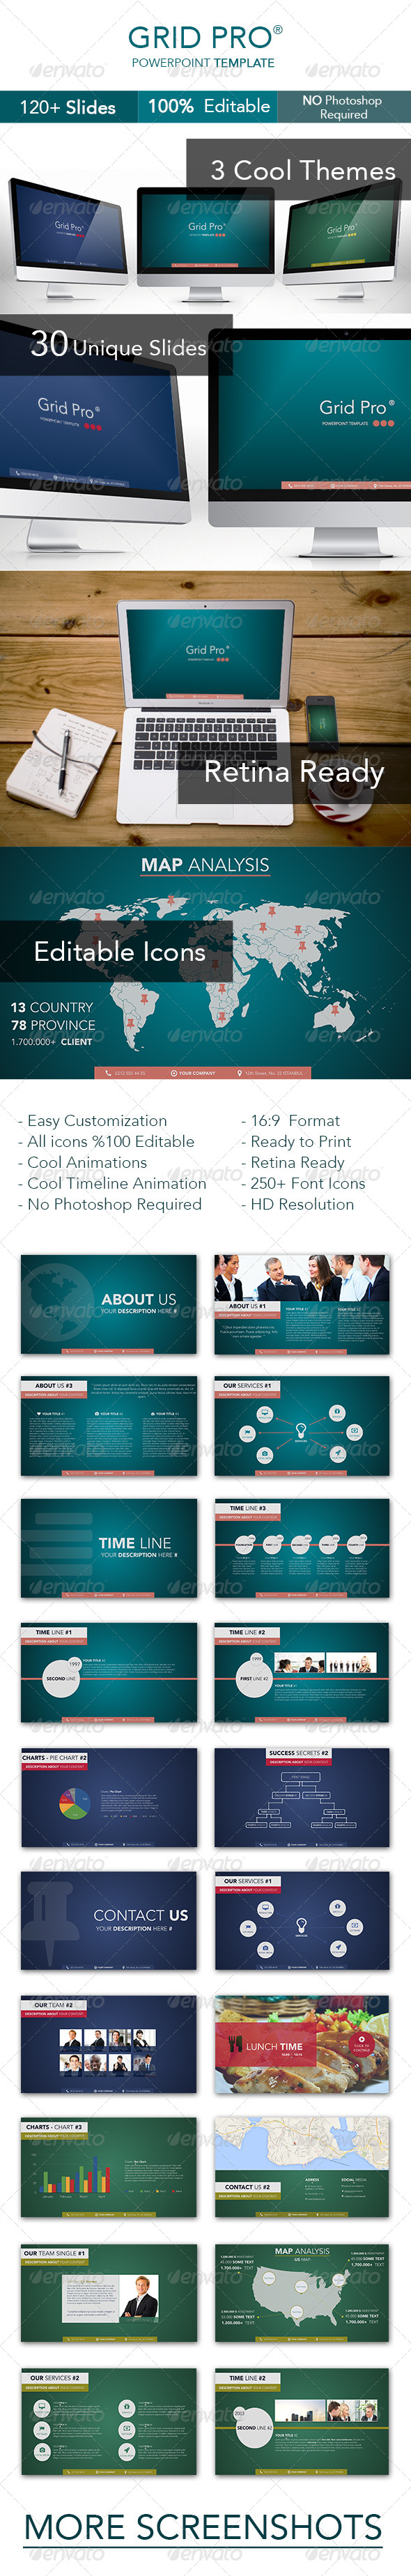 GraphicRiver Grid Pro Powerpoint Template 6977661